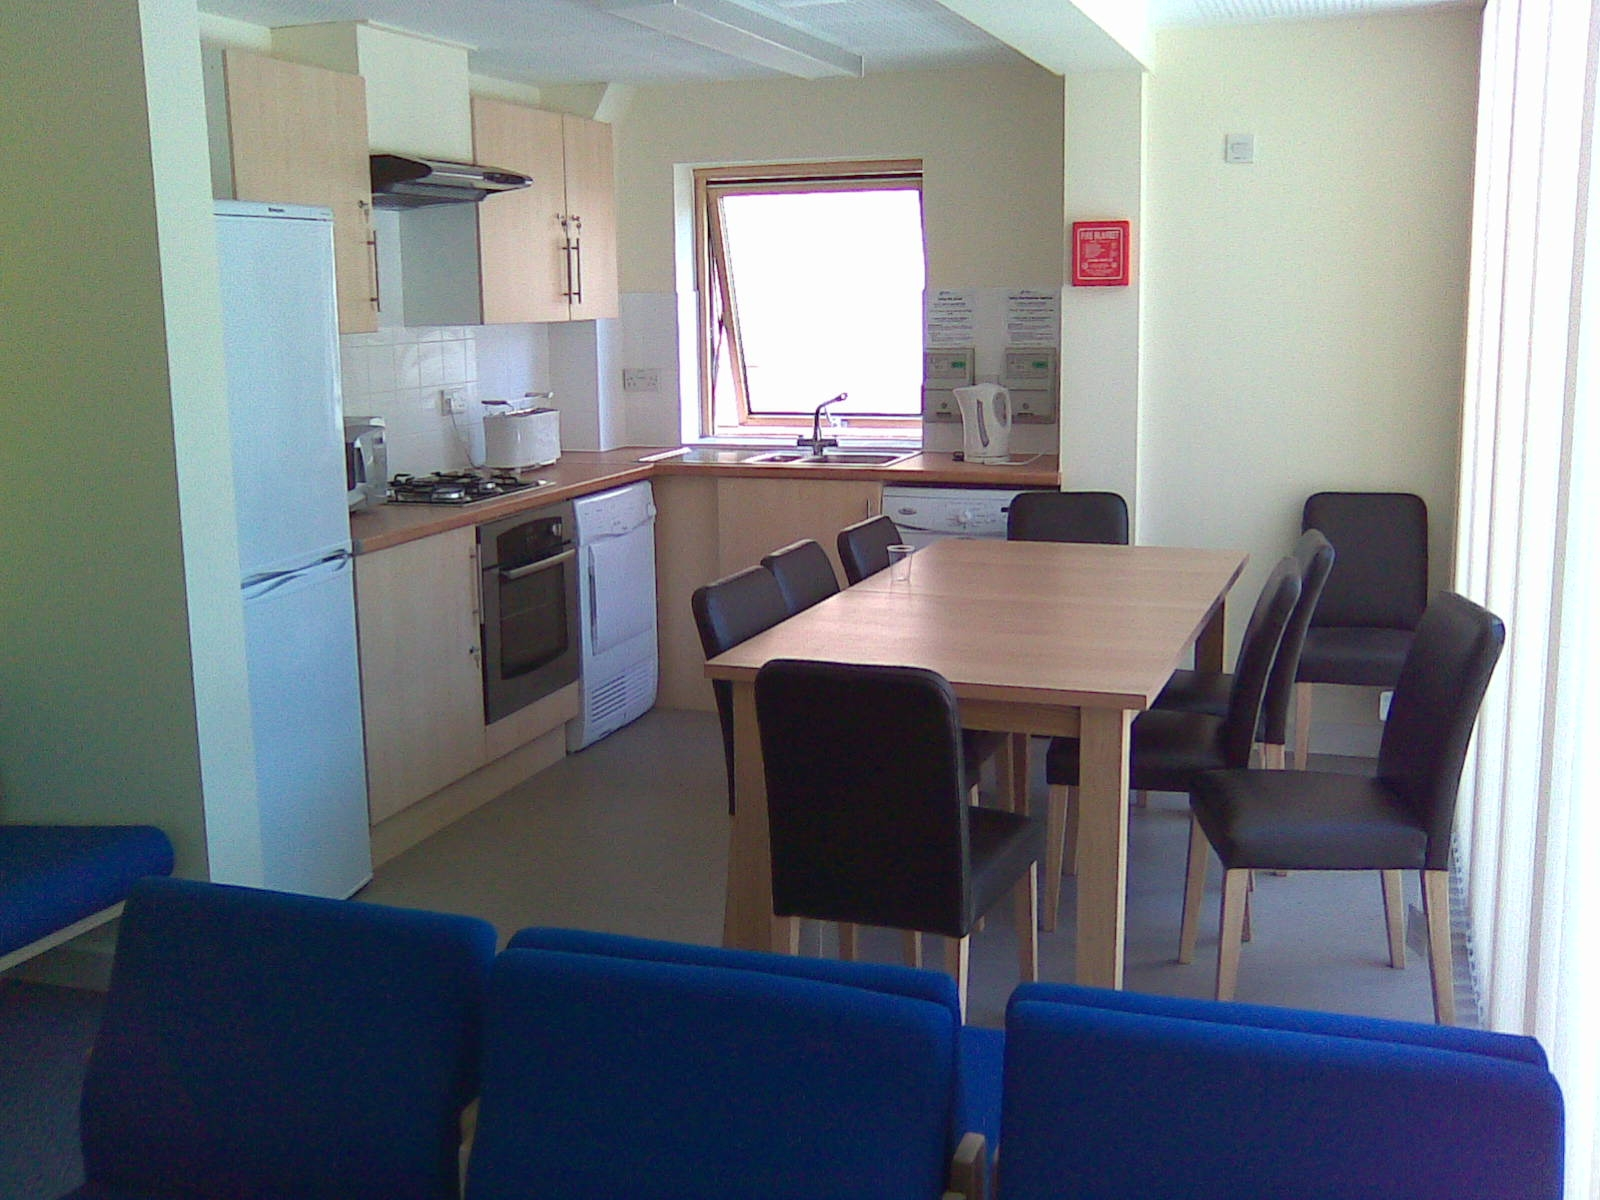 Number 75 Grimwade Street sample kitchen